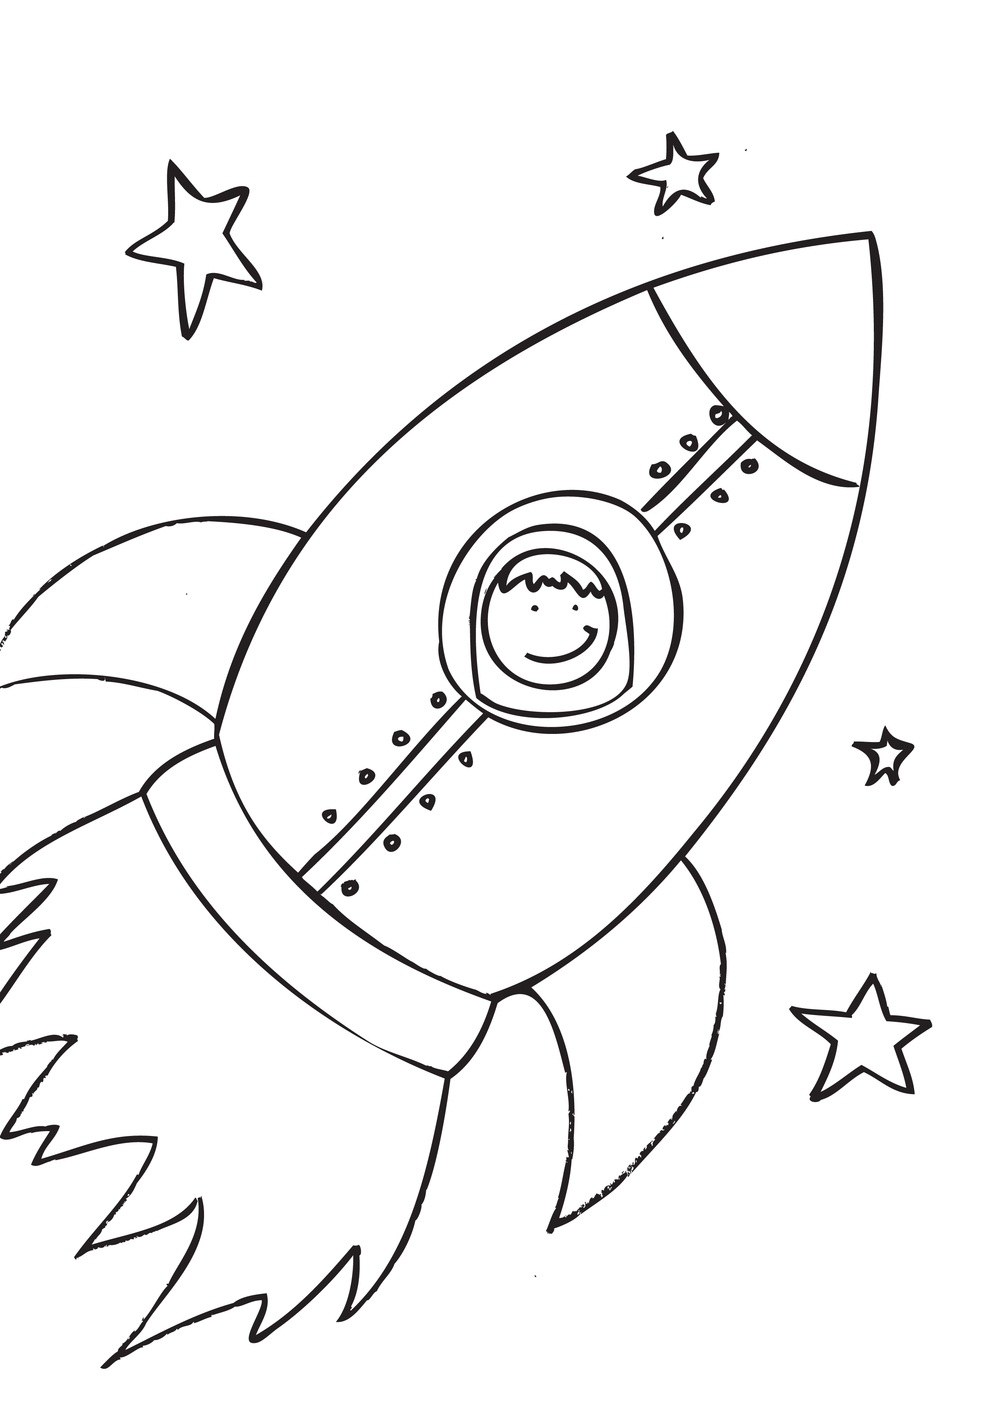 1000x1411 Breakthrough Rocket Ship Coloring Page Free Printable Pages